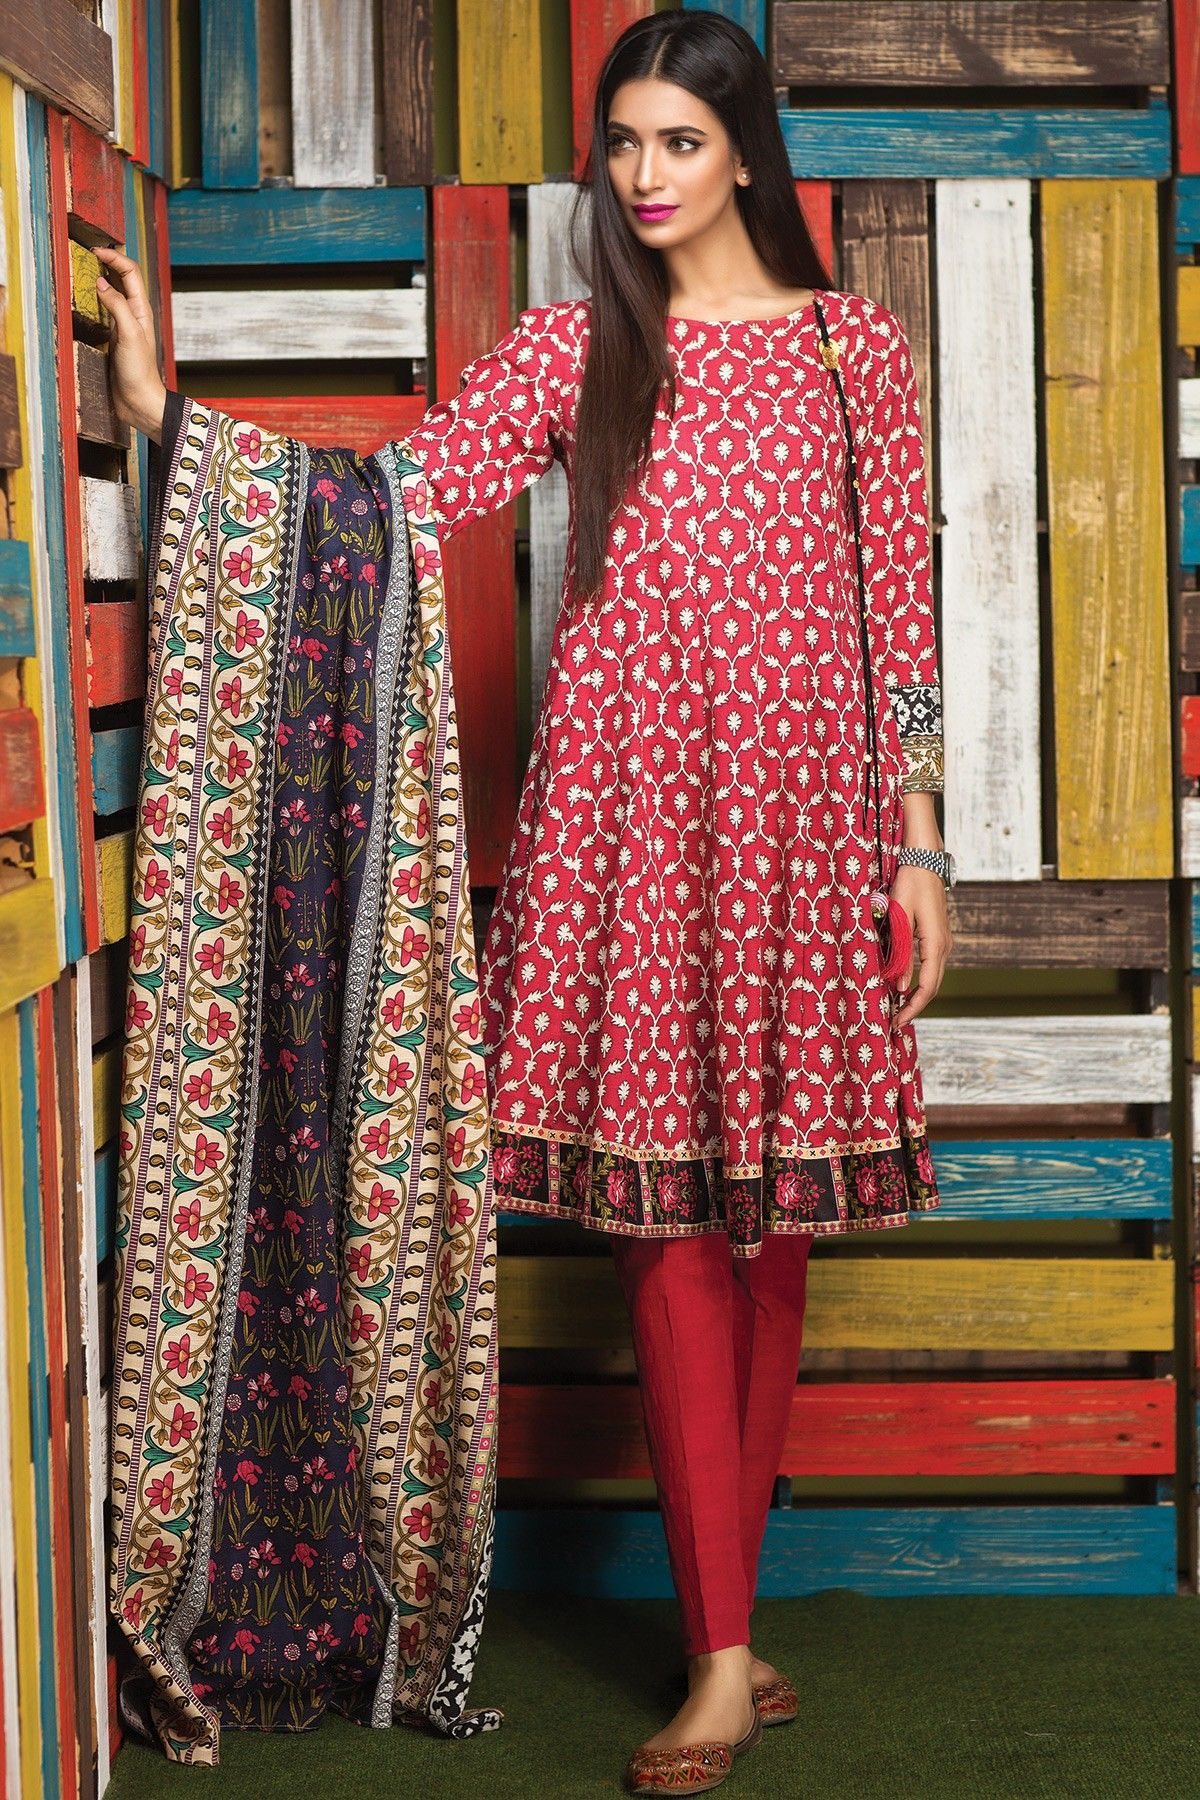 656ade8b3211 Khaadi - A16803-B-RED - Winter Collection Vol 1 - Unstitched ...